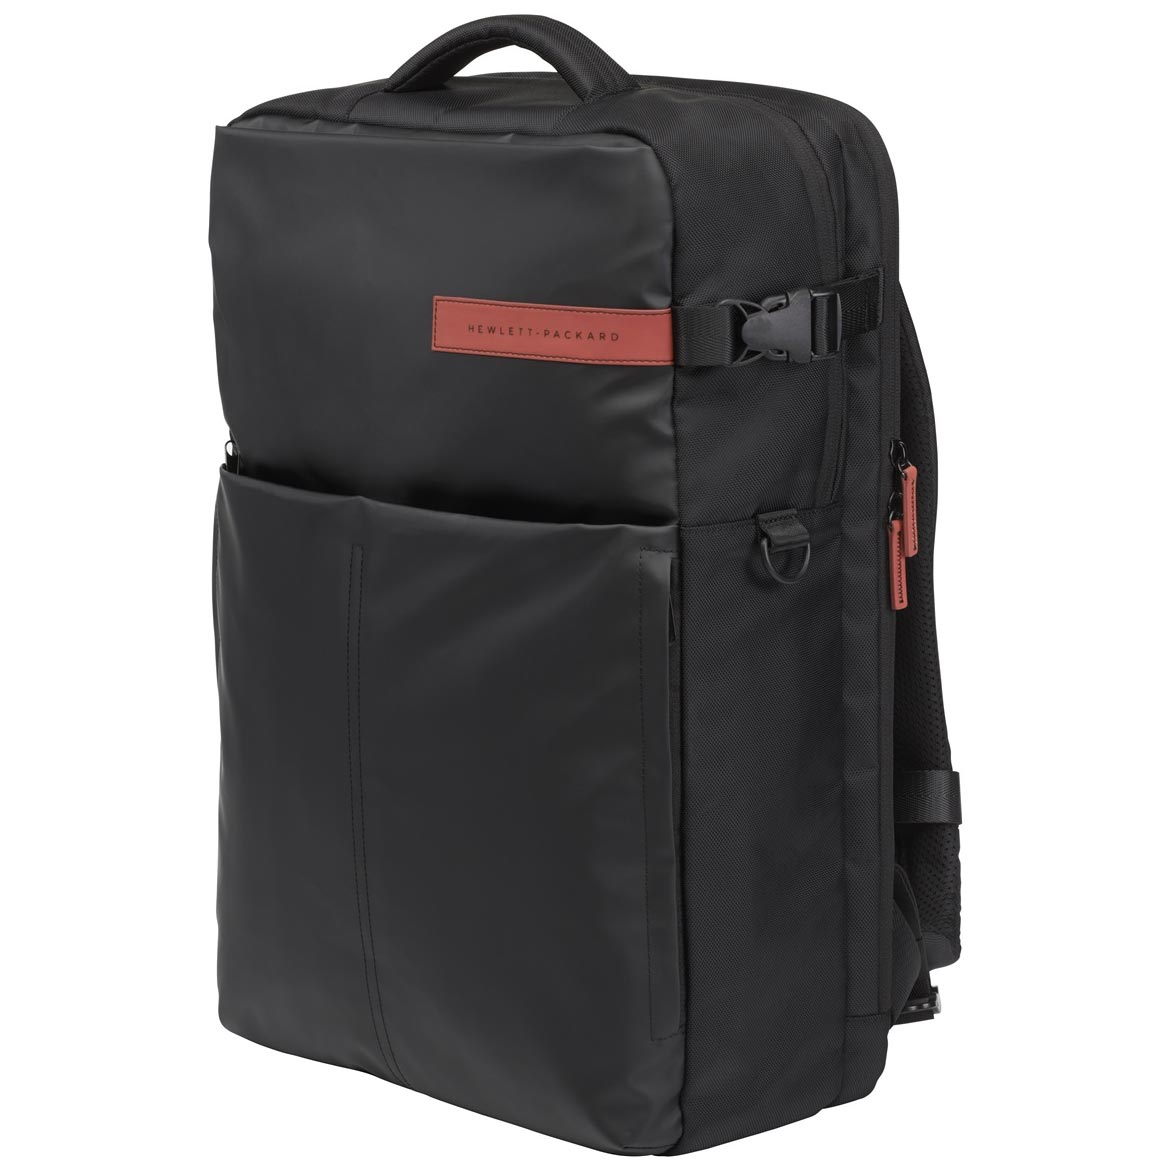 hp omen gaming backpack sac sacoche housse hp sur. Black Bedroom Furniture Sets. Home Design Ideas